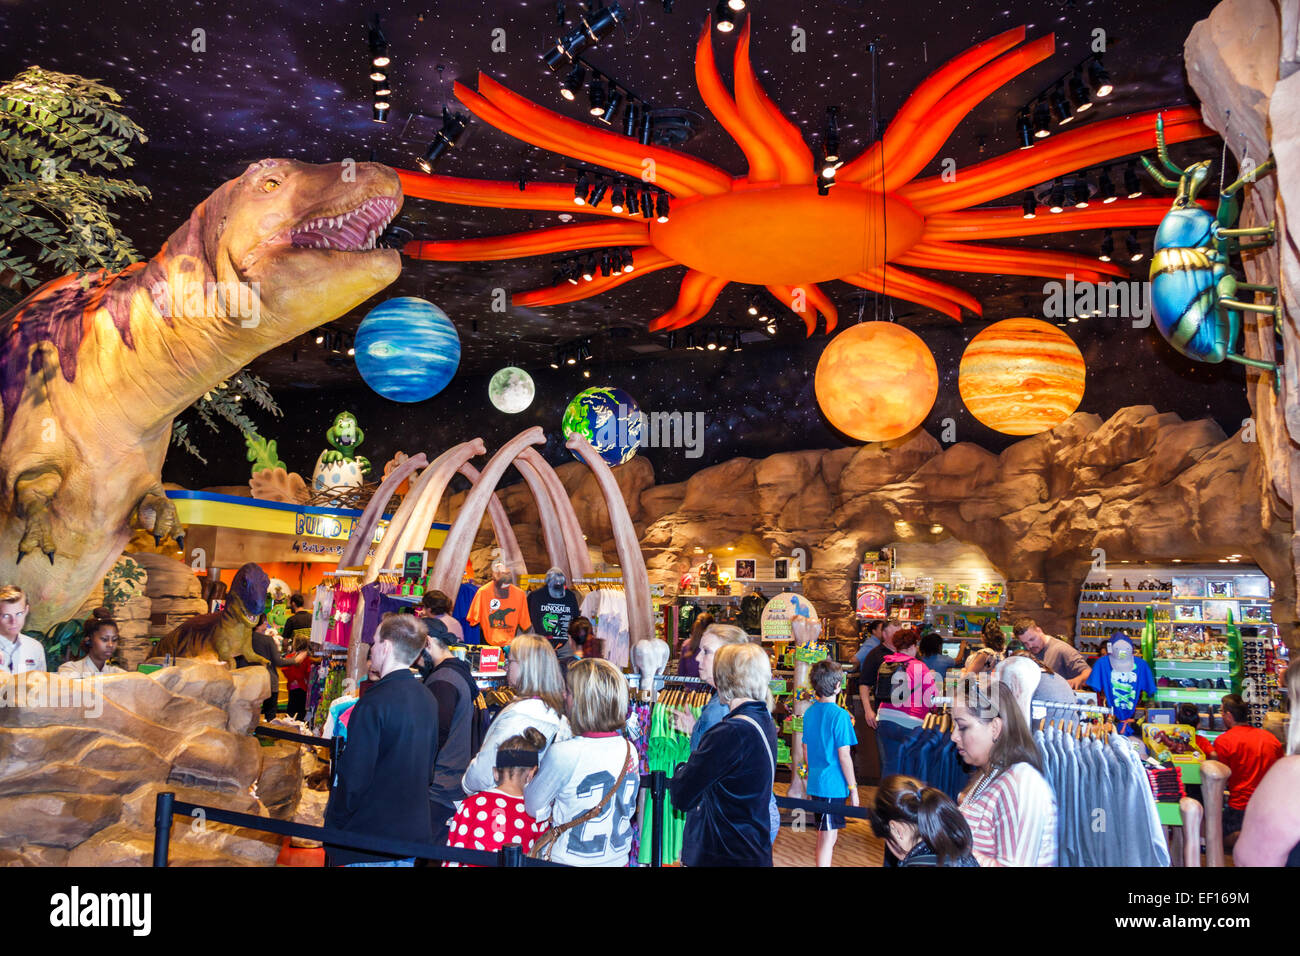 Floride Orlando Lake Buena Vista Downtown Disney shopping restauration divertissement T-Rex dinosaure restaurant Photo Stock